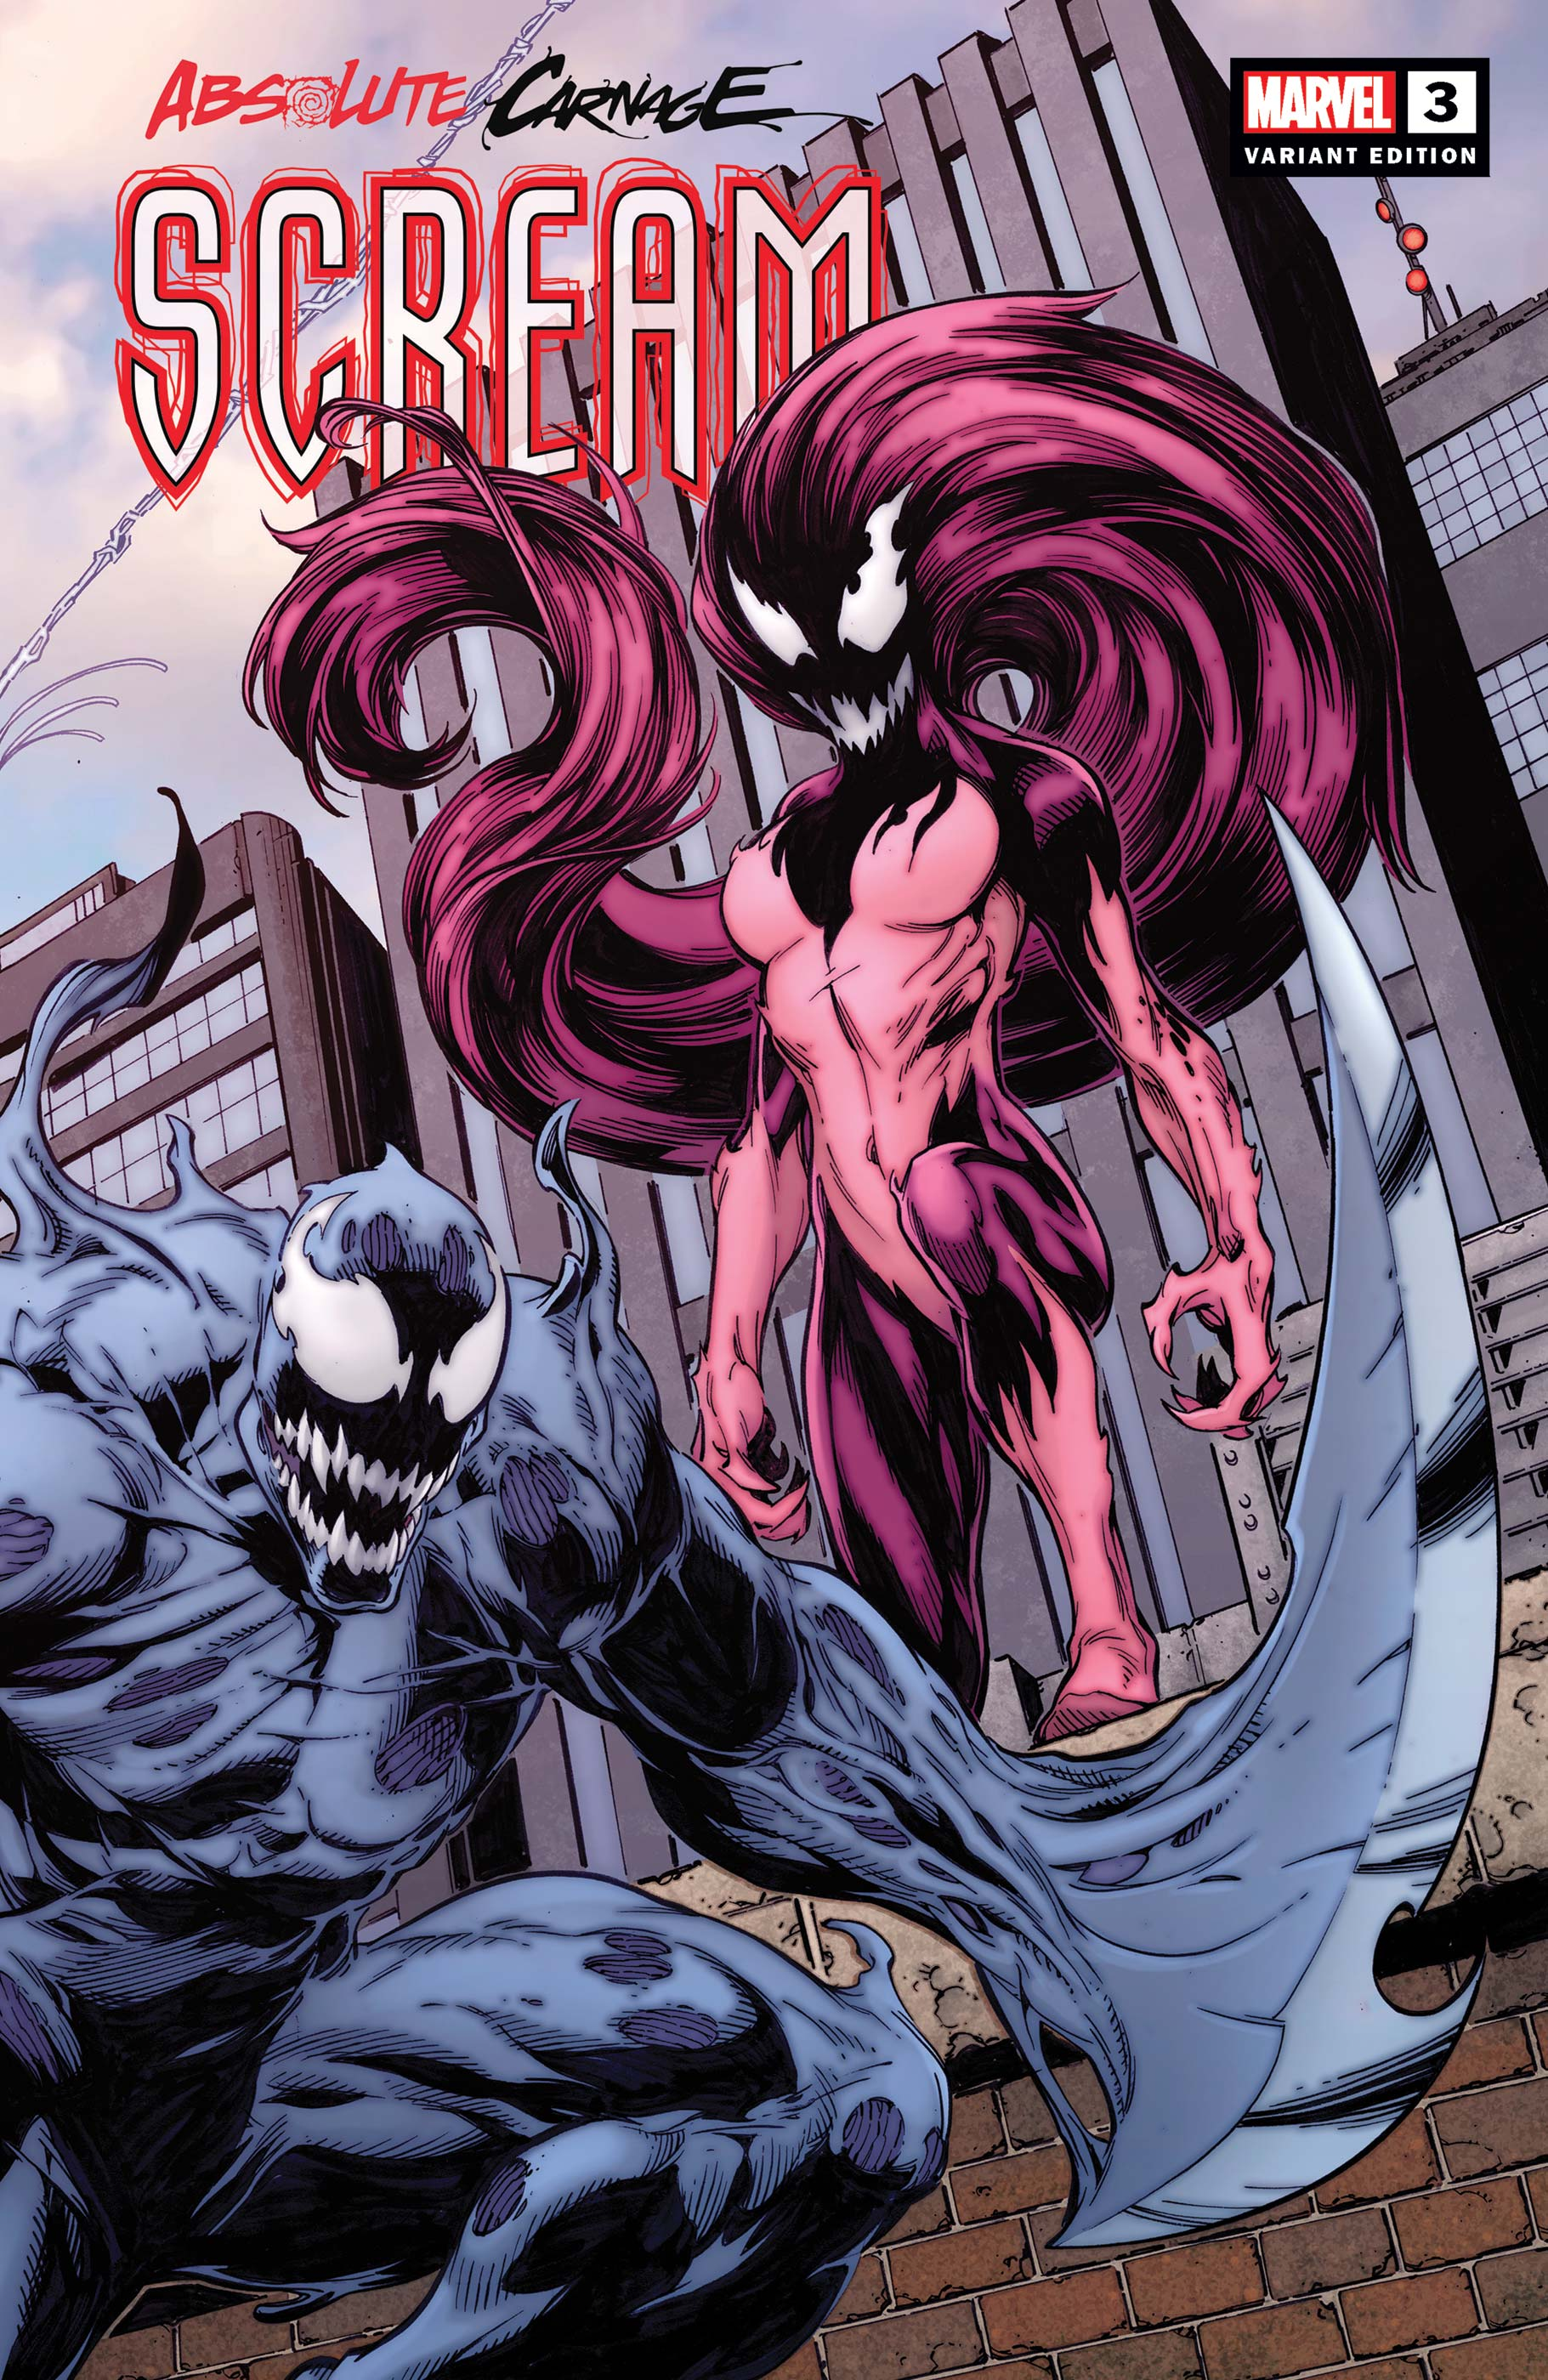 Absolute Carnage: Scream (2019) #3 (Variant)